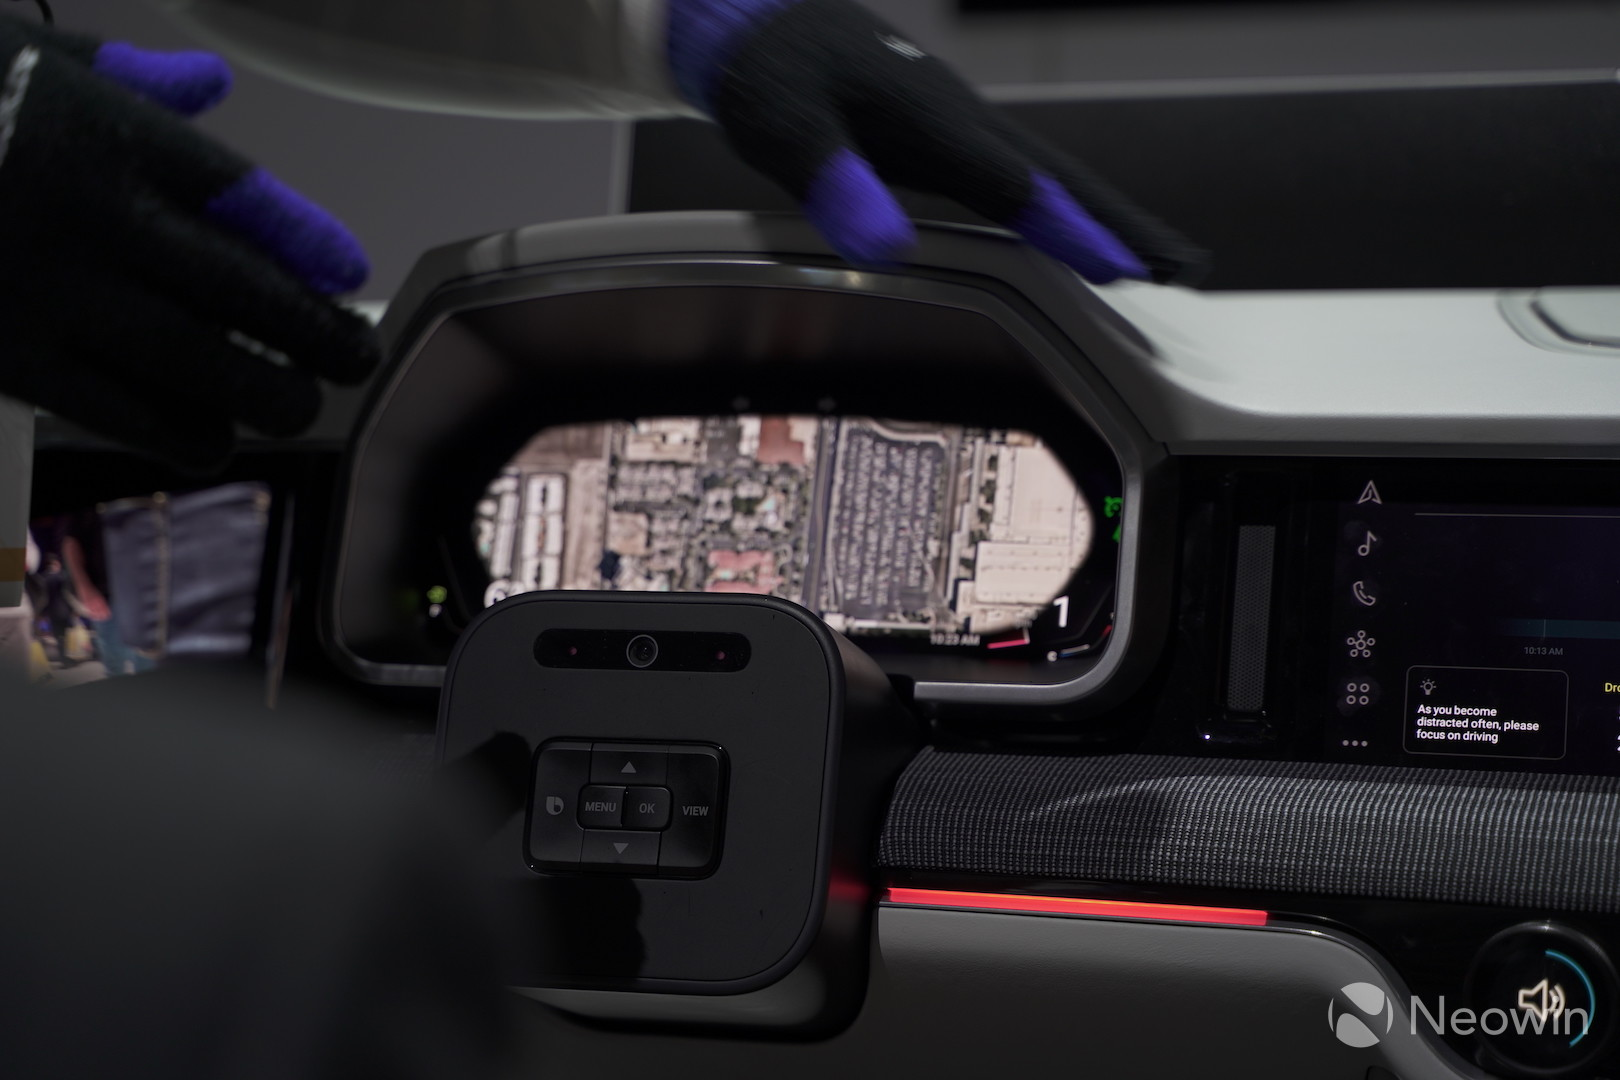 CES 2019: Taking a look at Samsung's Digital Cockpit